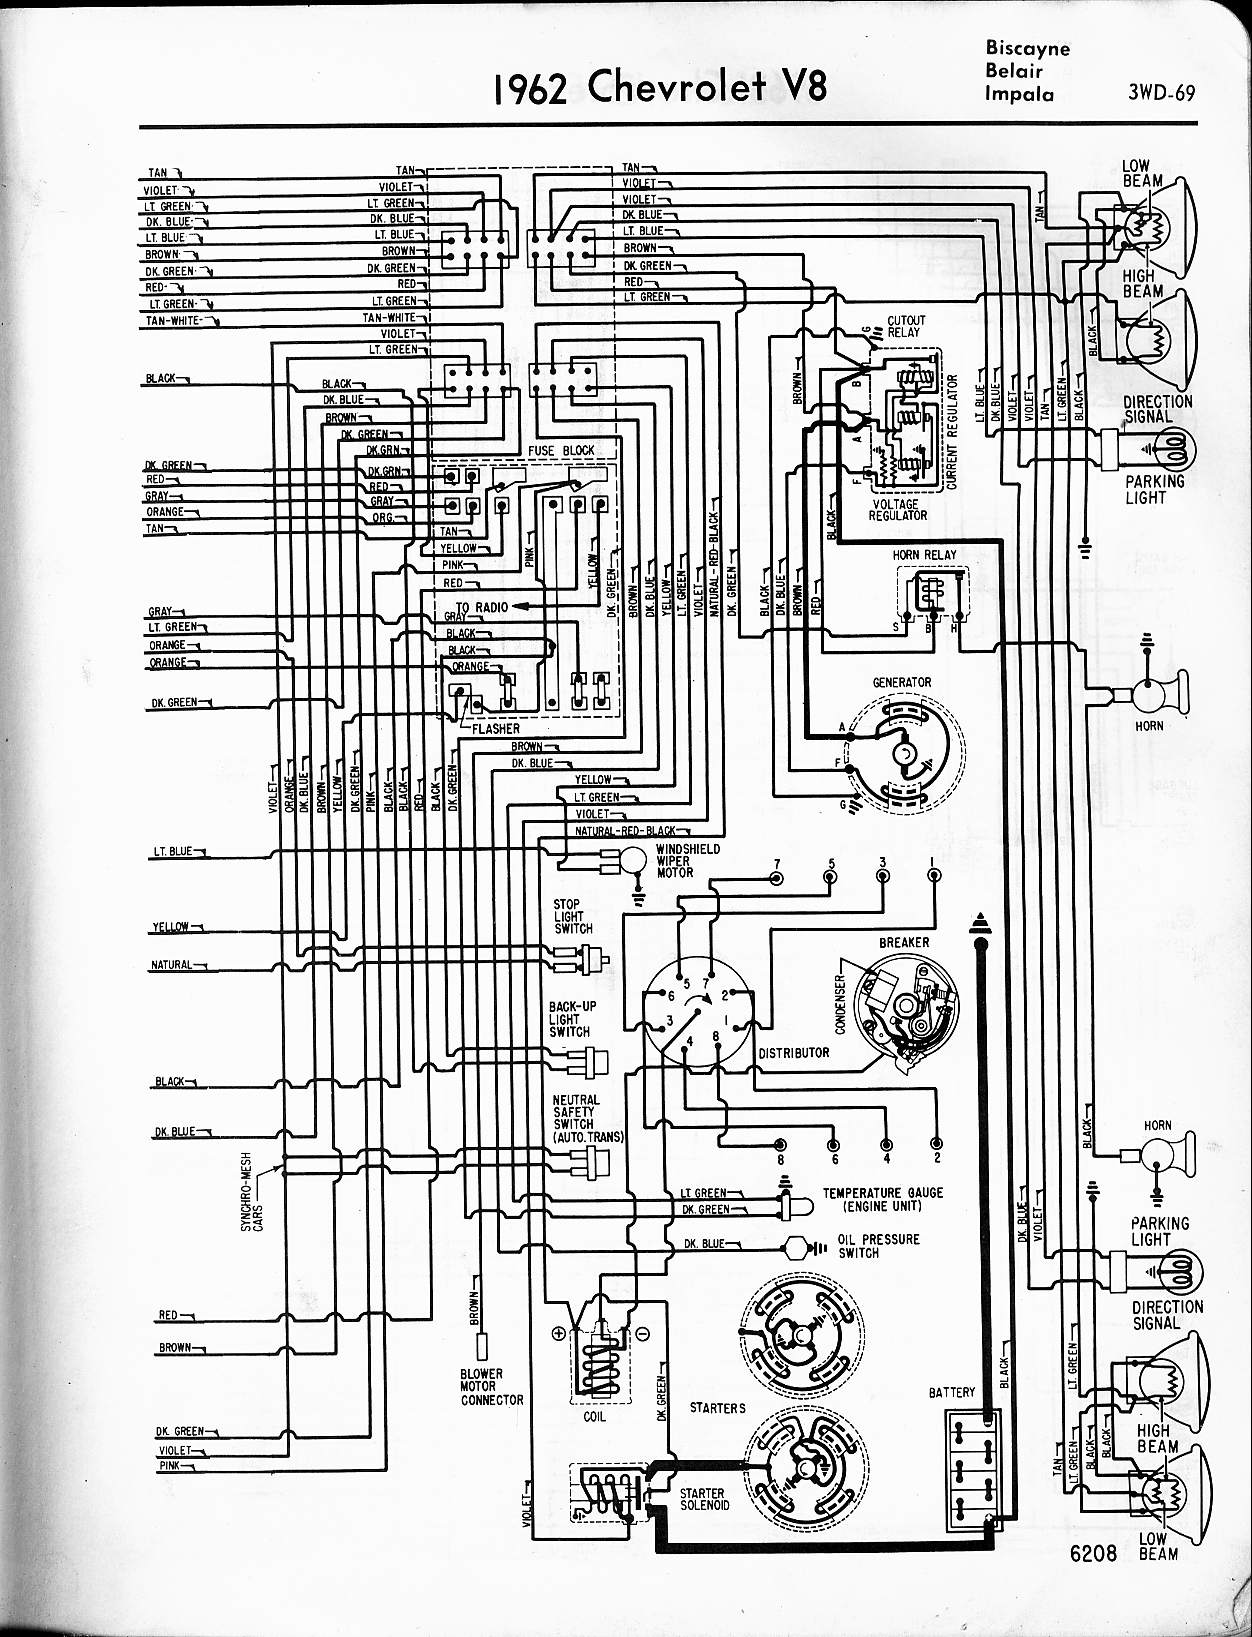 57 65 chevy wiring diagrams rh oldcarmanualproject com 1962 chevrolet impala wiring diagram 1962 chevrolet impala wiring diagram